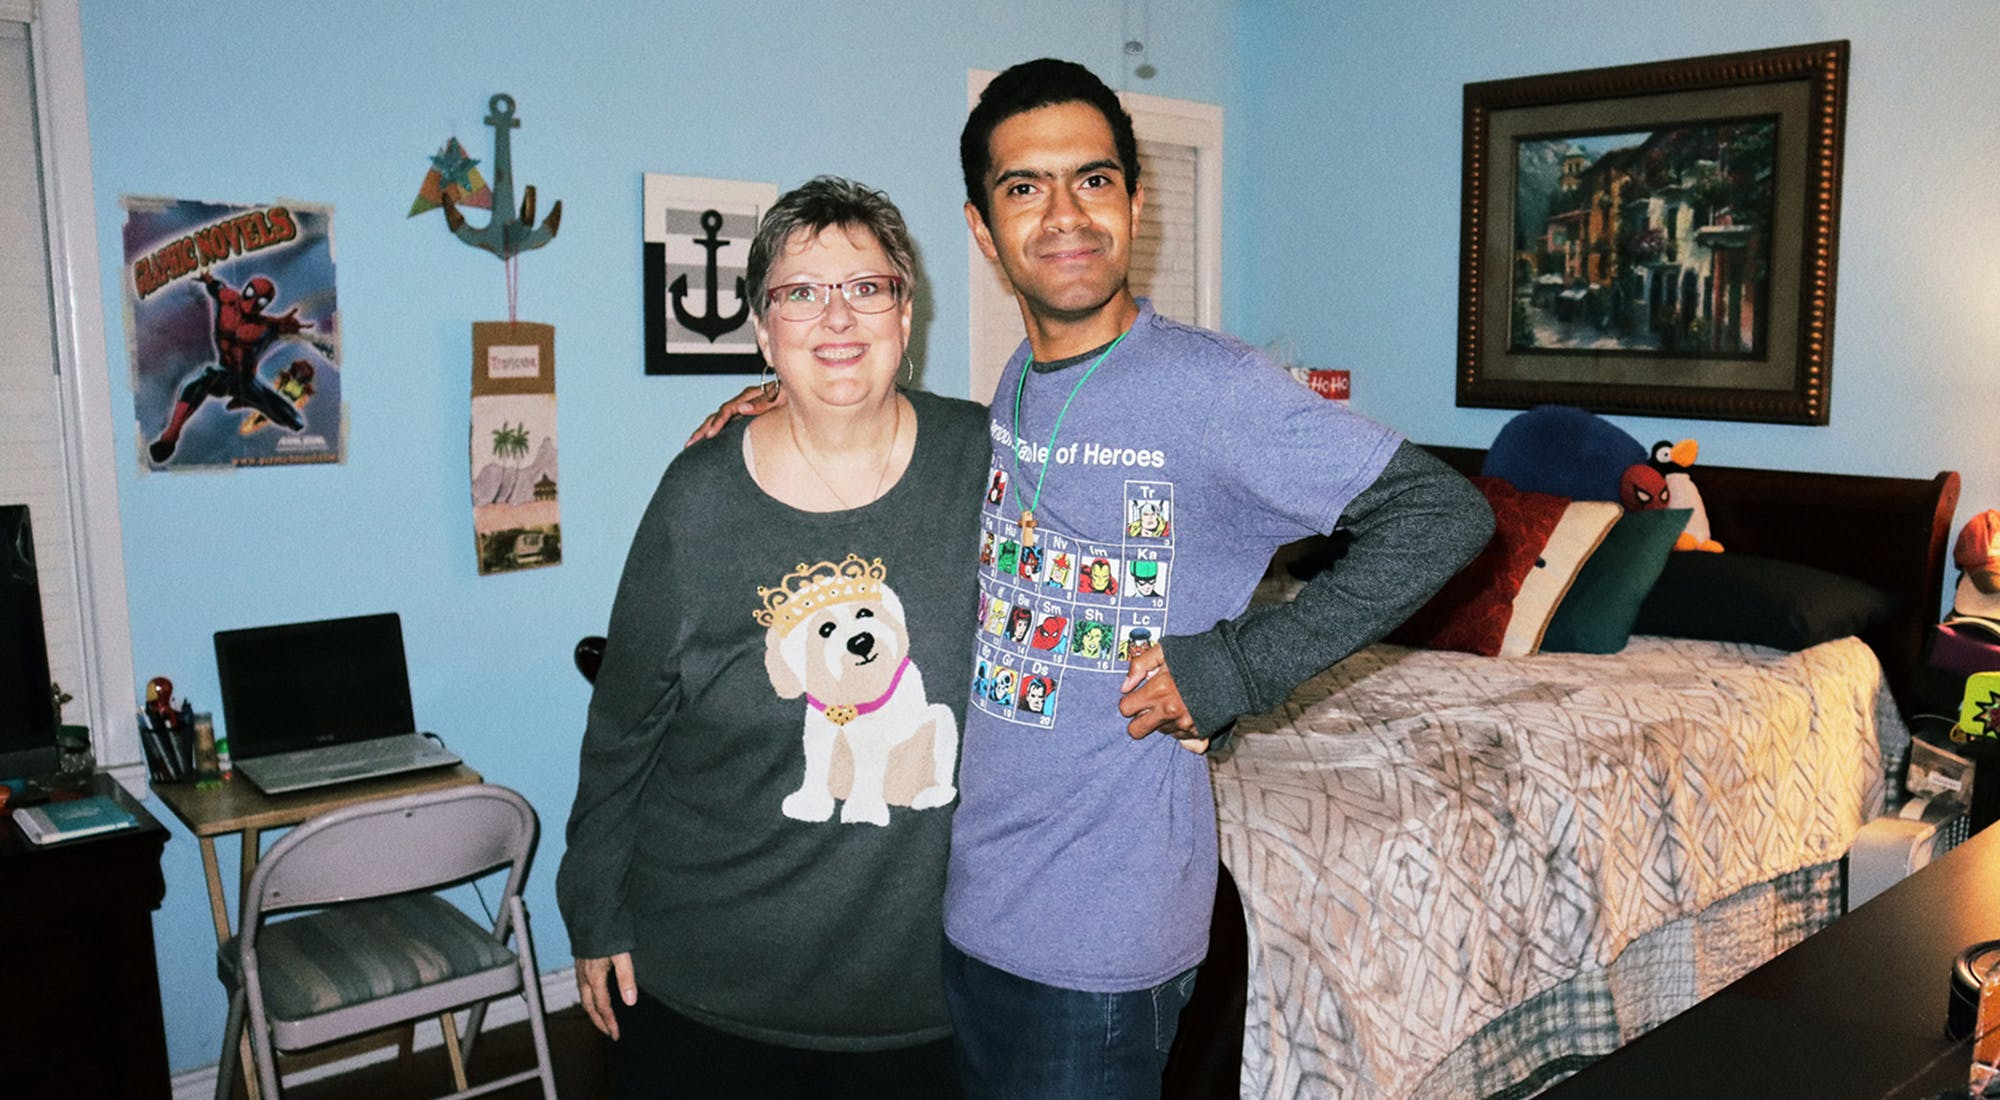 Michell Girard and Chris Barrington in his new room at her home on December 20, 2019.